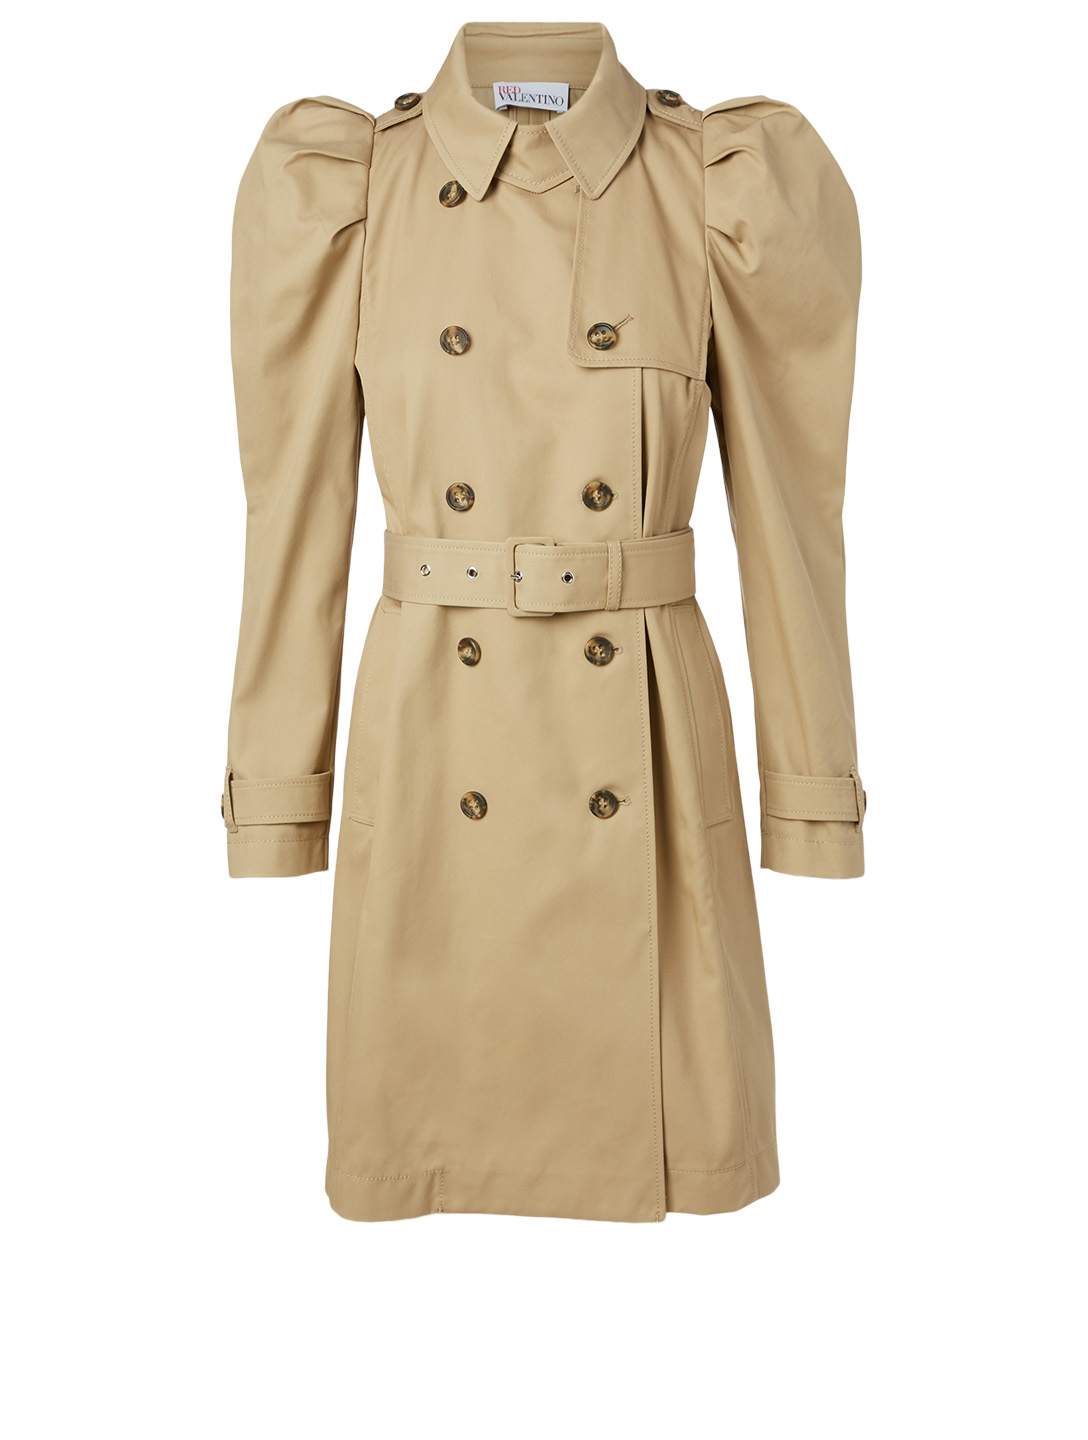 RED VALENTINO Cotton-Blend Trench Coat Women's Beige